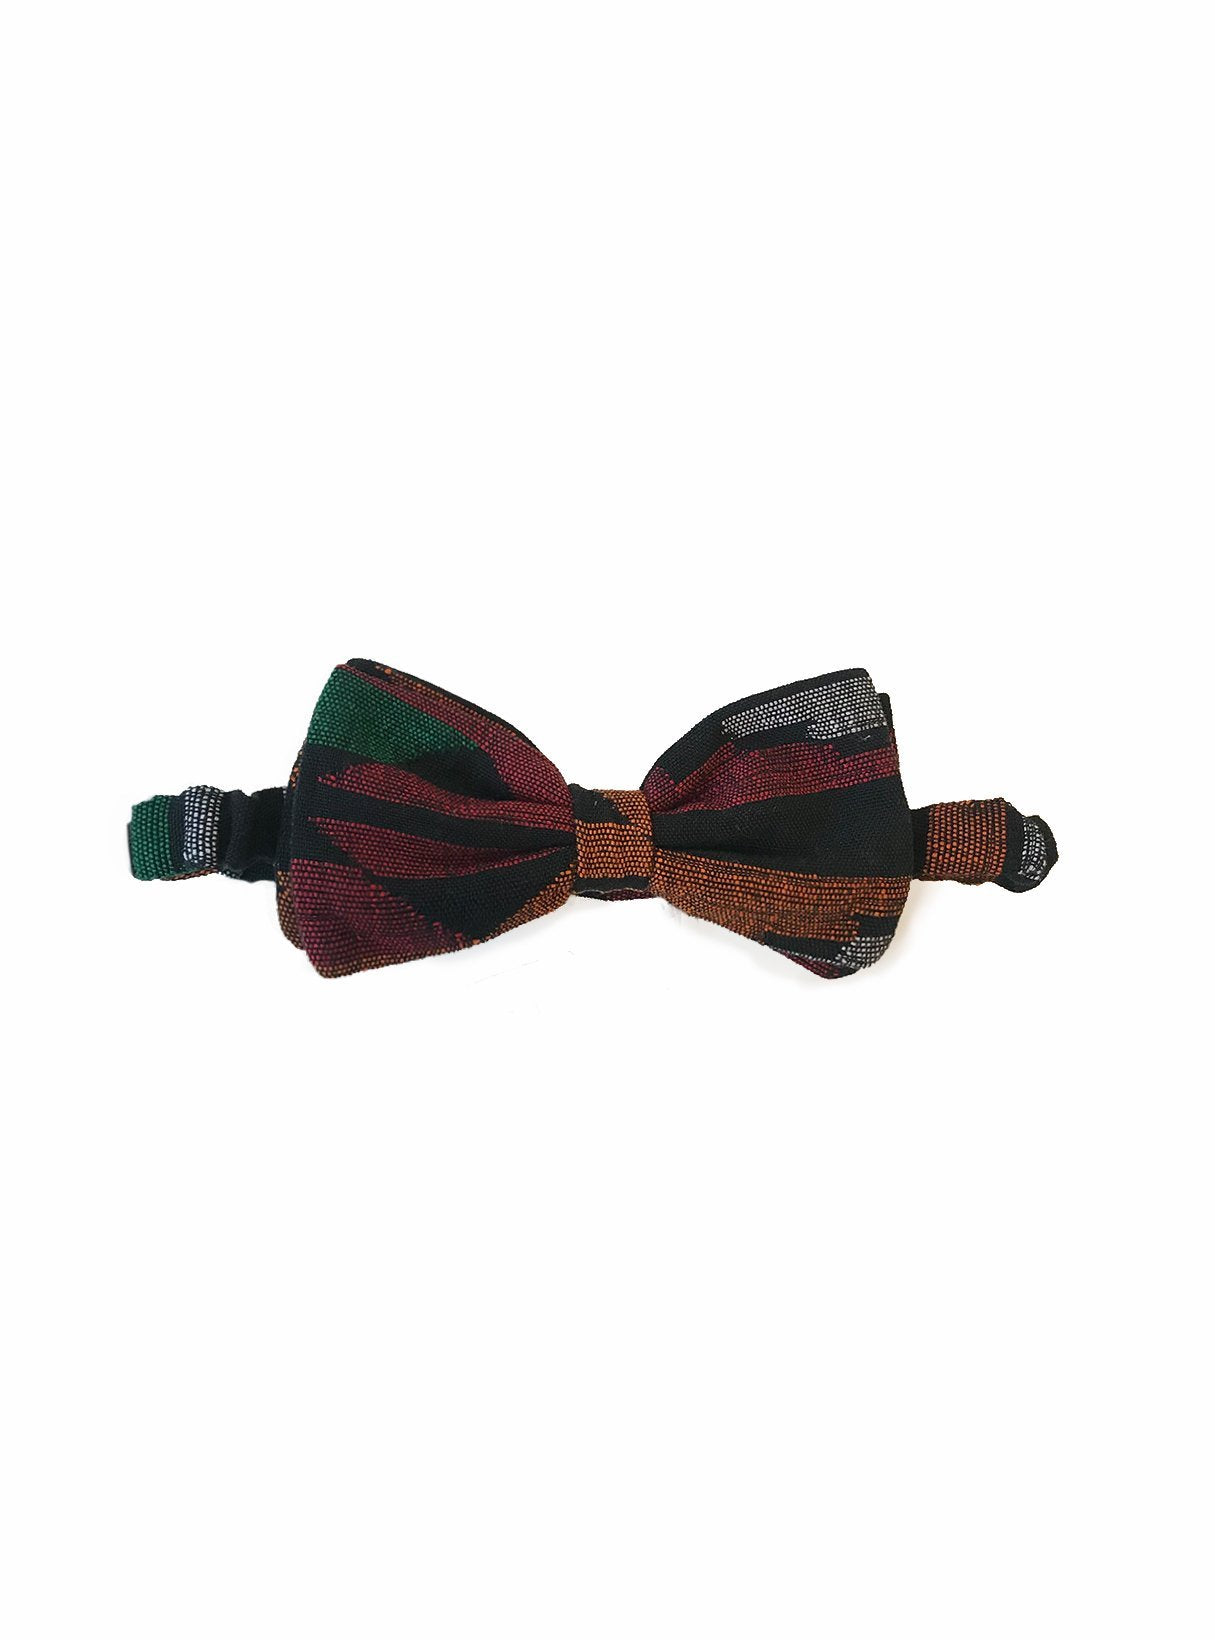 Cotton bow tie - dhaka print